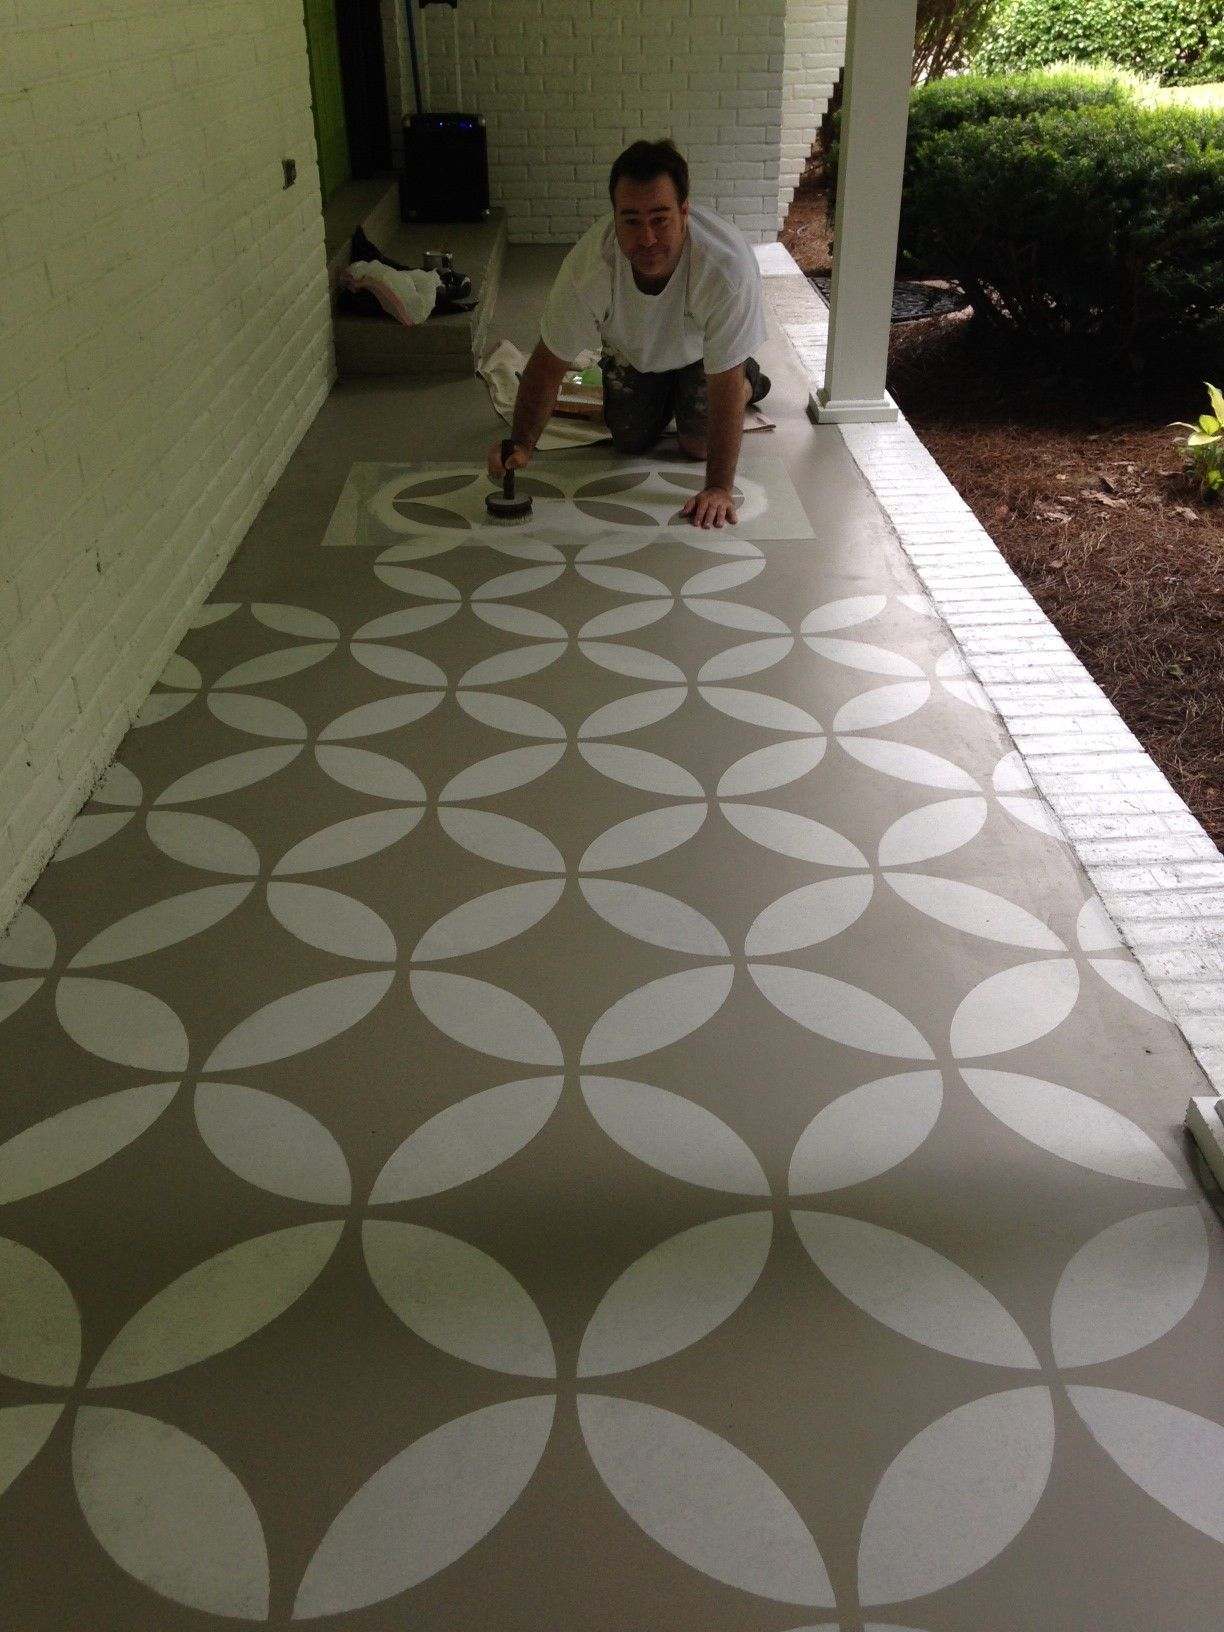 Concrete Patio Floor Paint Ideas Yard Pinterest Floor Painting Concret